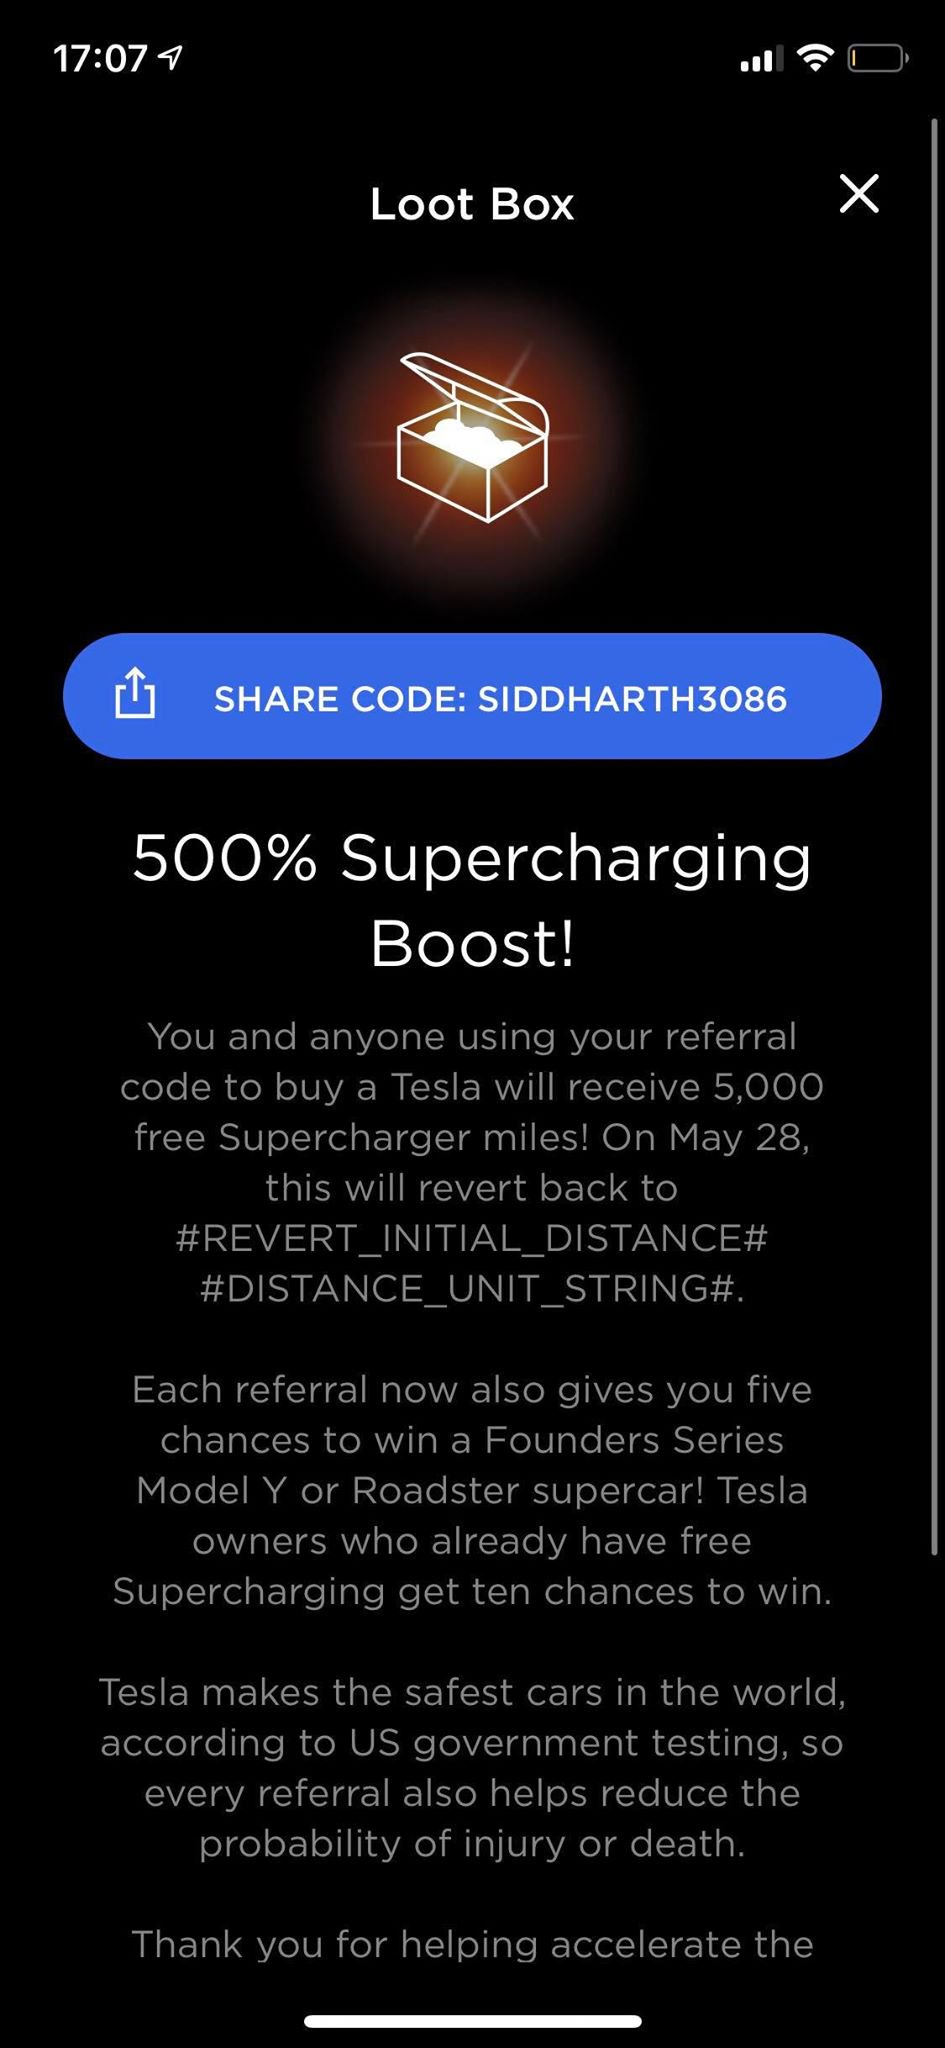 Tesla Loot Box message mentioning the details of the 5,000 Free Sueprcharging miles and other perks of the new referral program.